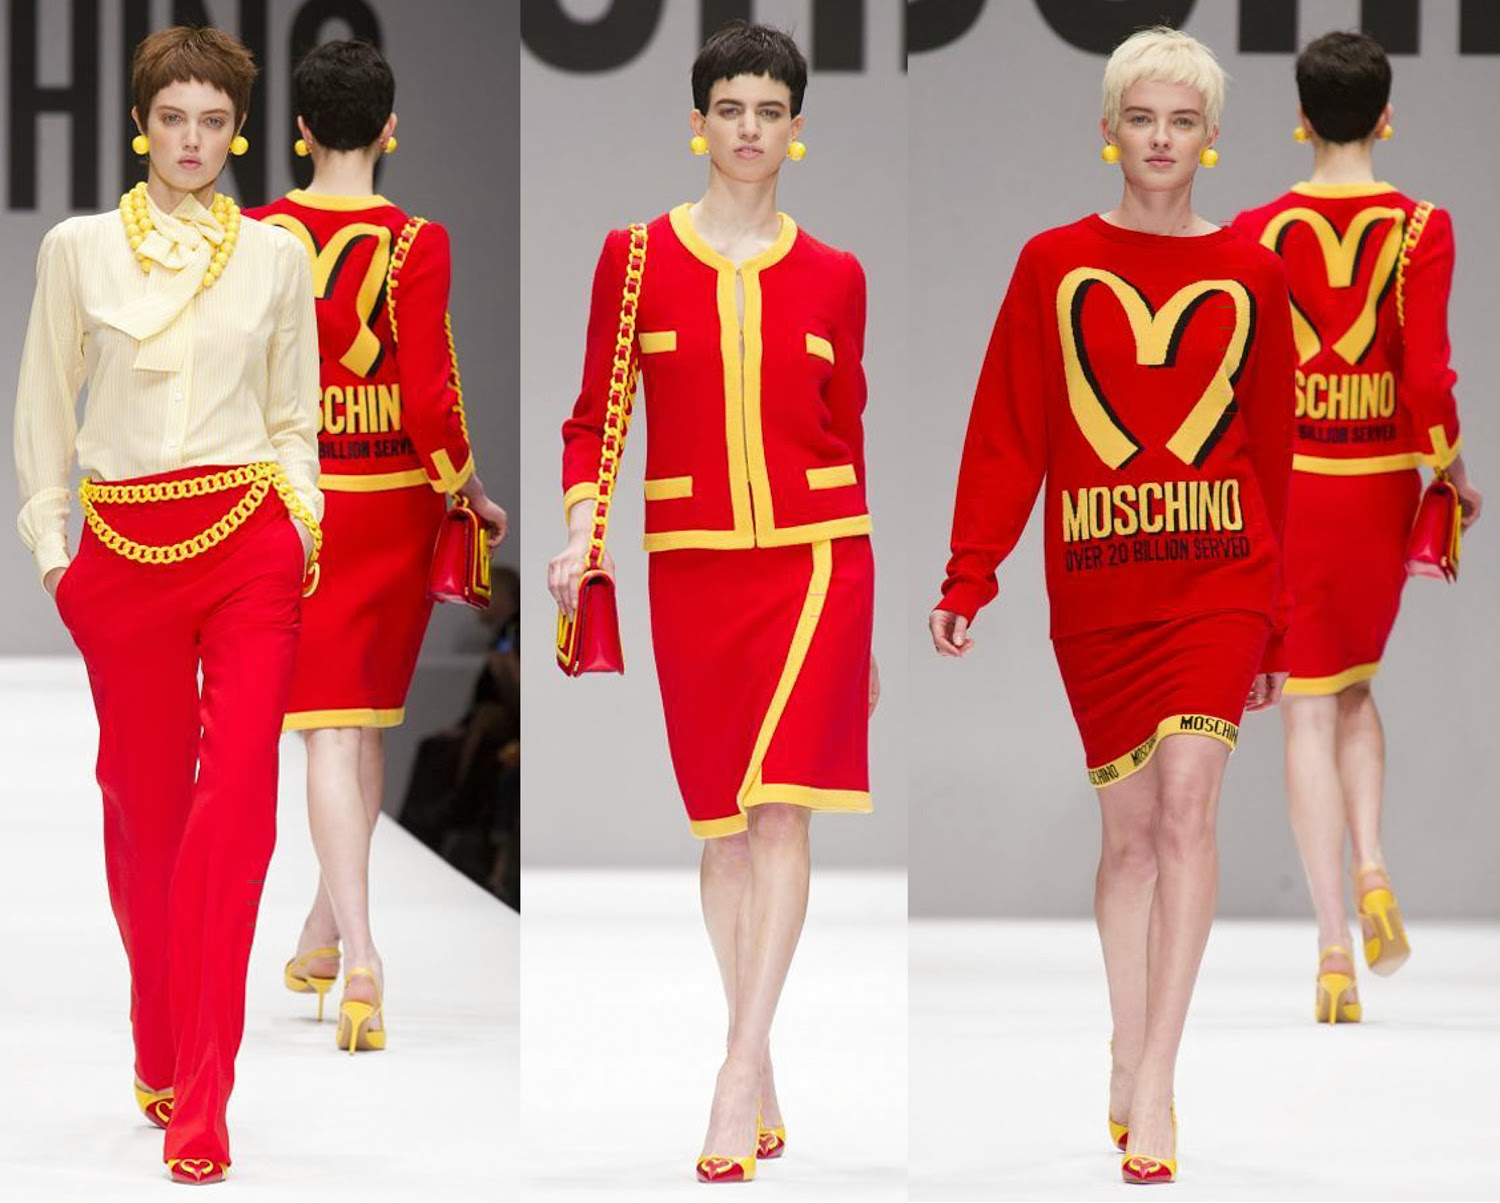 Moschino Autumn Fall Winter 2014 1